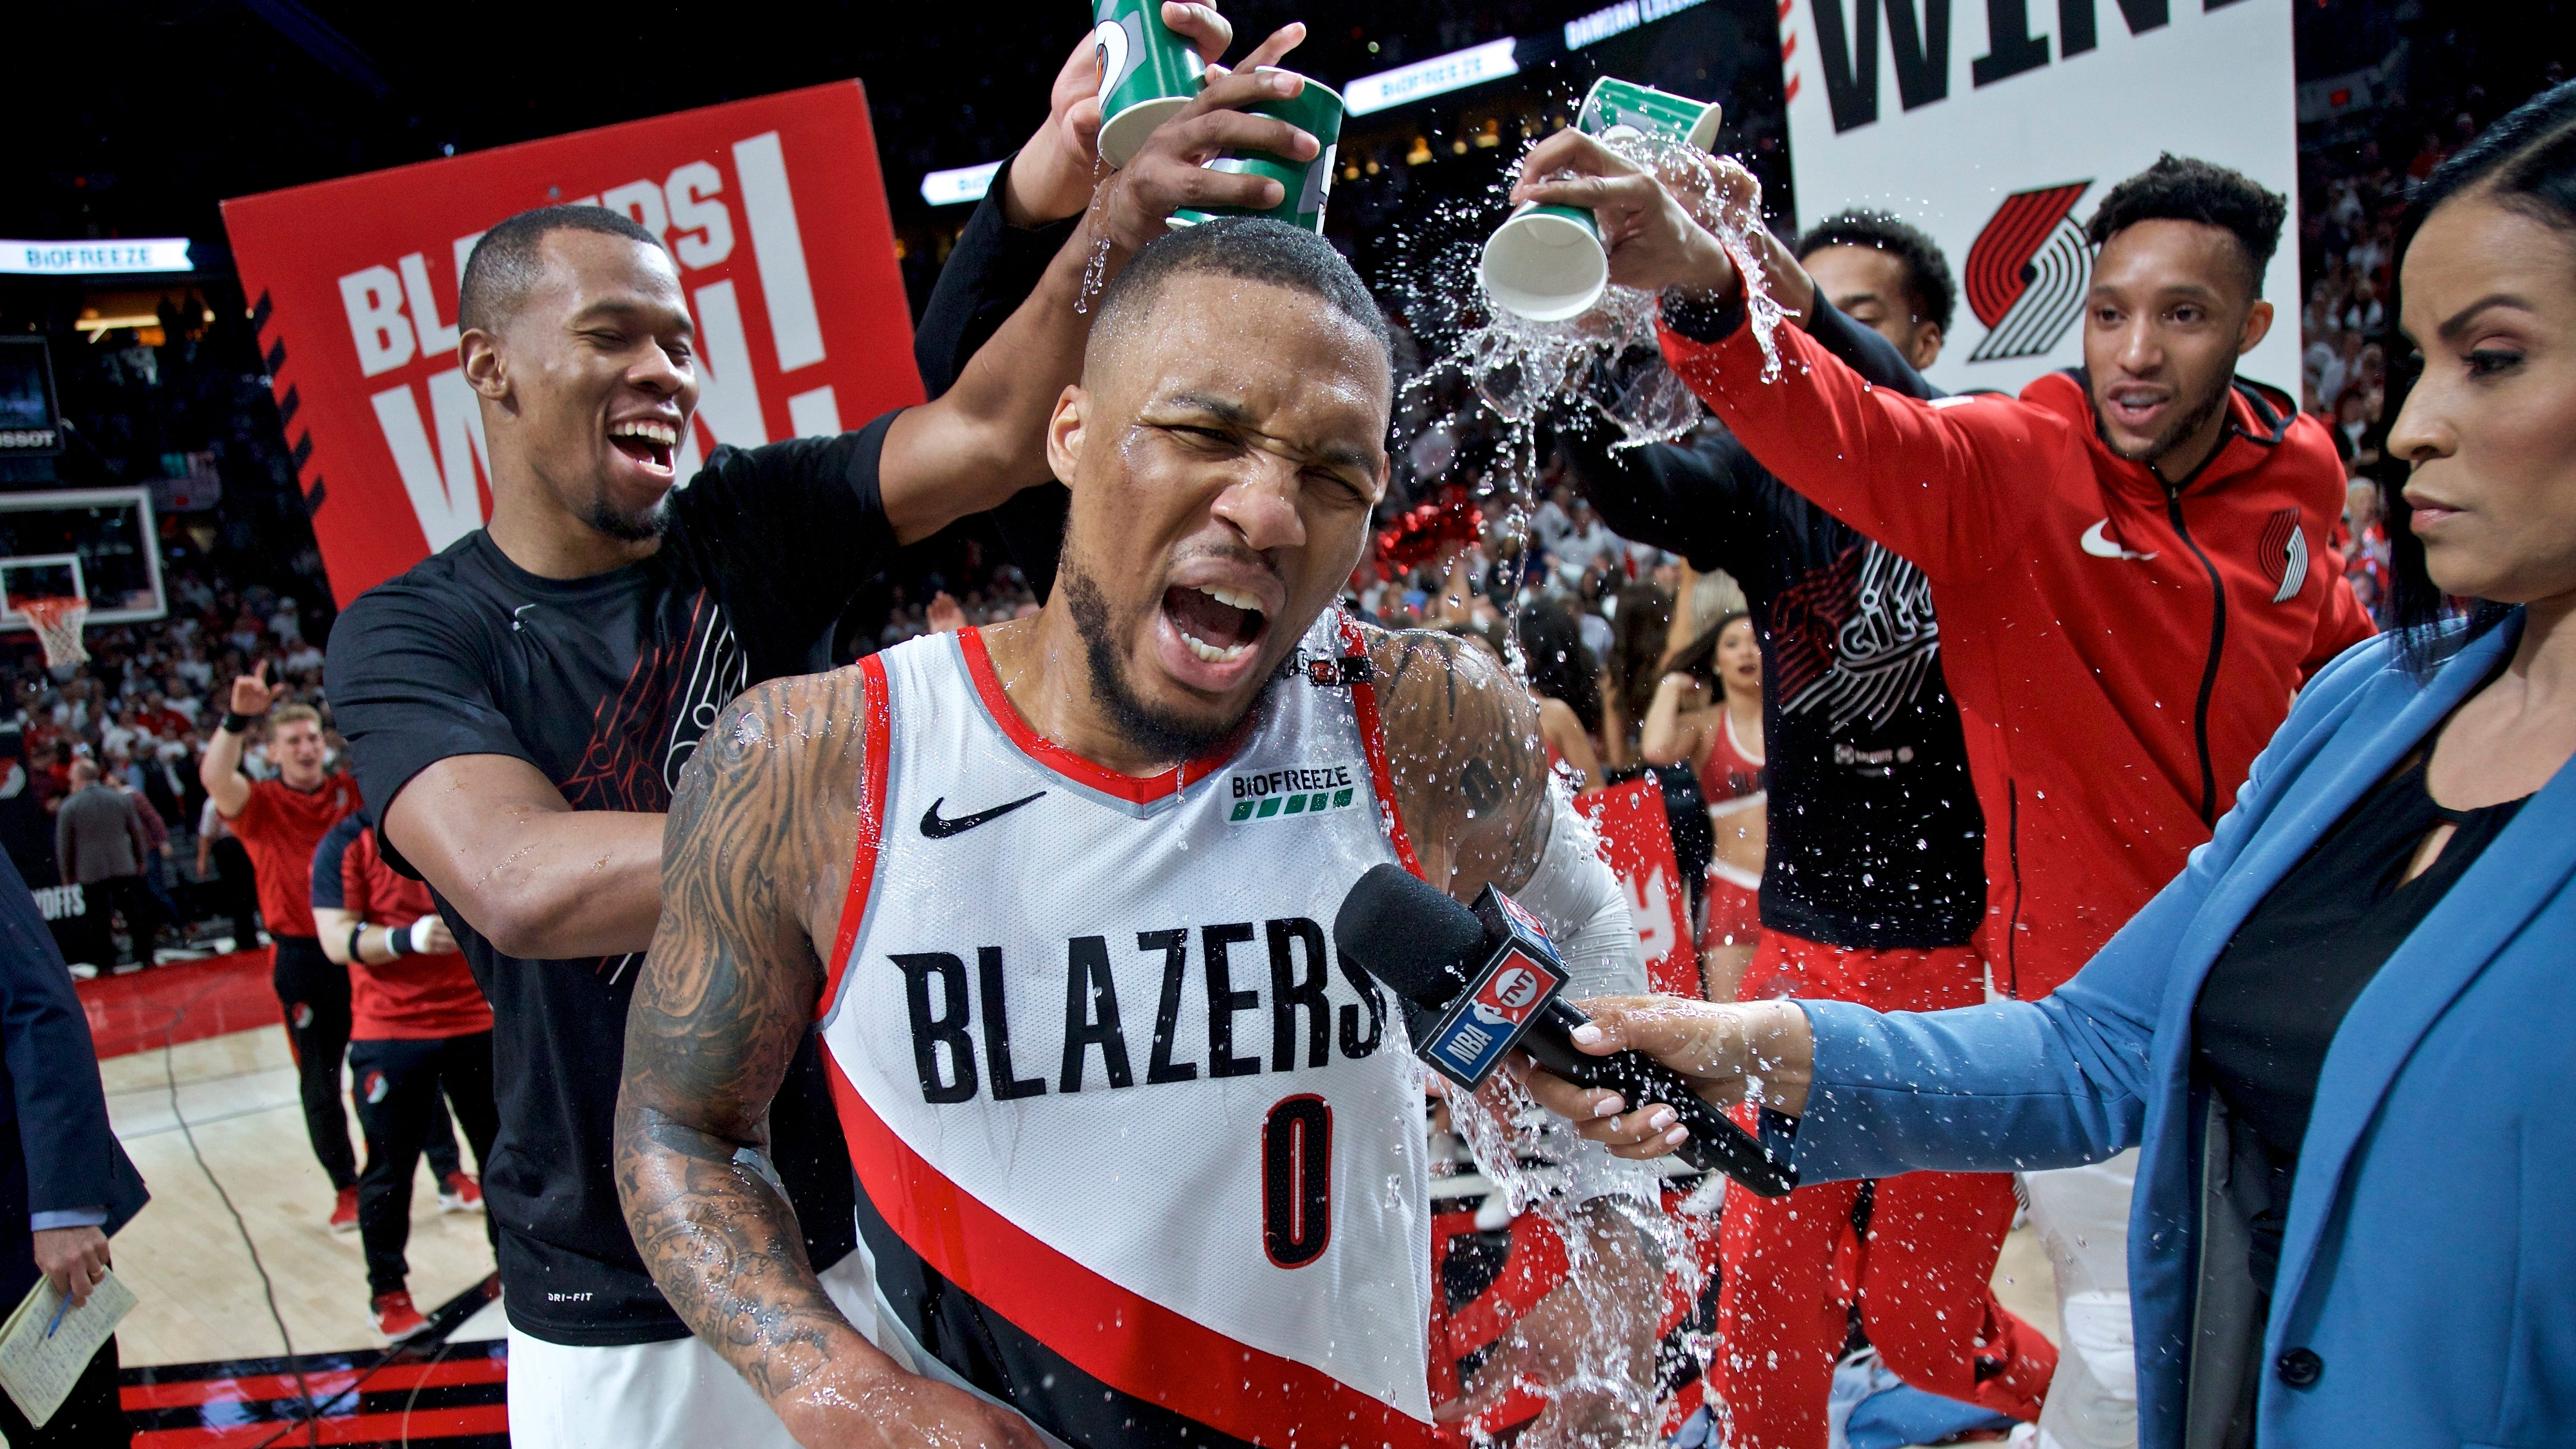 Portland Trail Blazers players pour water on Damian Lillard after his game-winner against Oklahoma City.